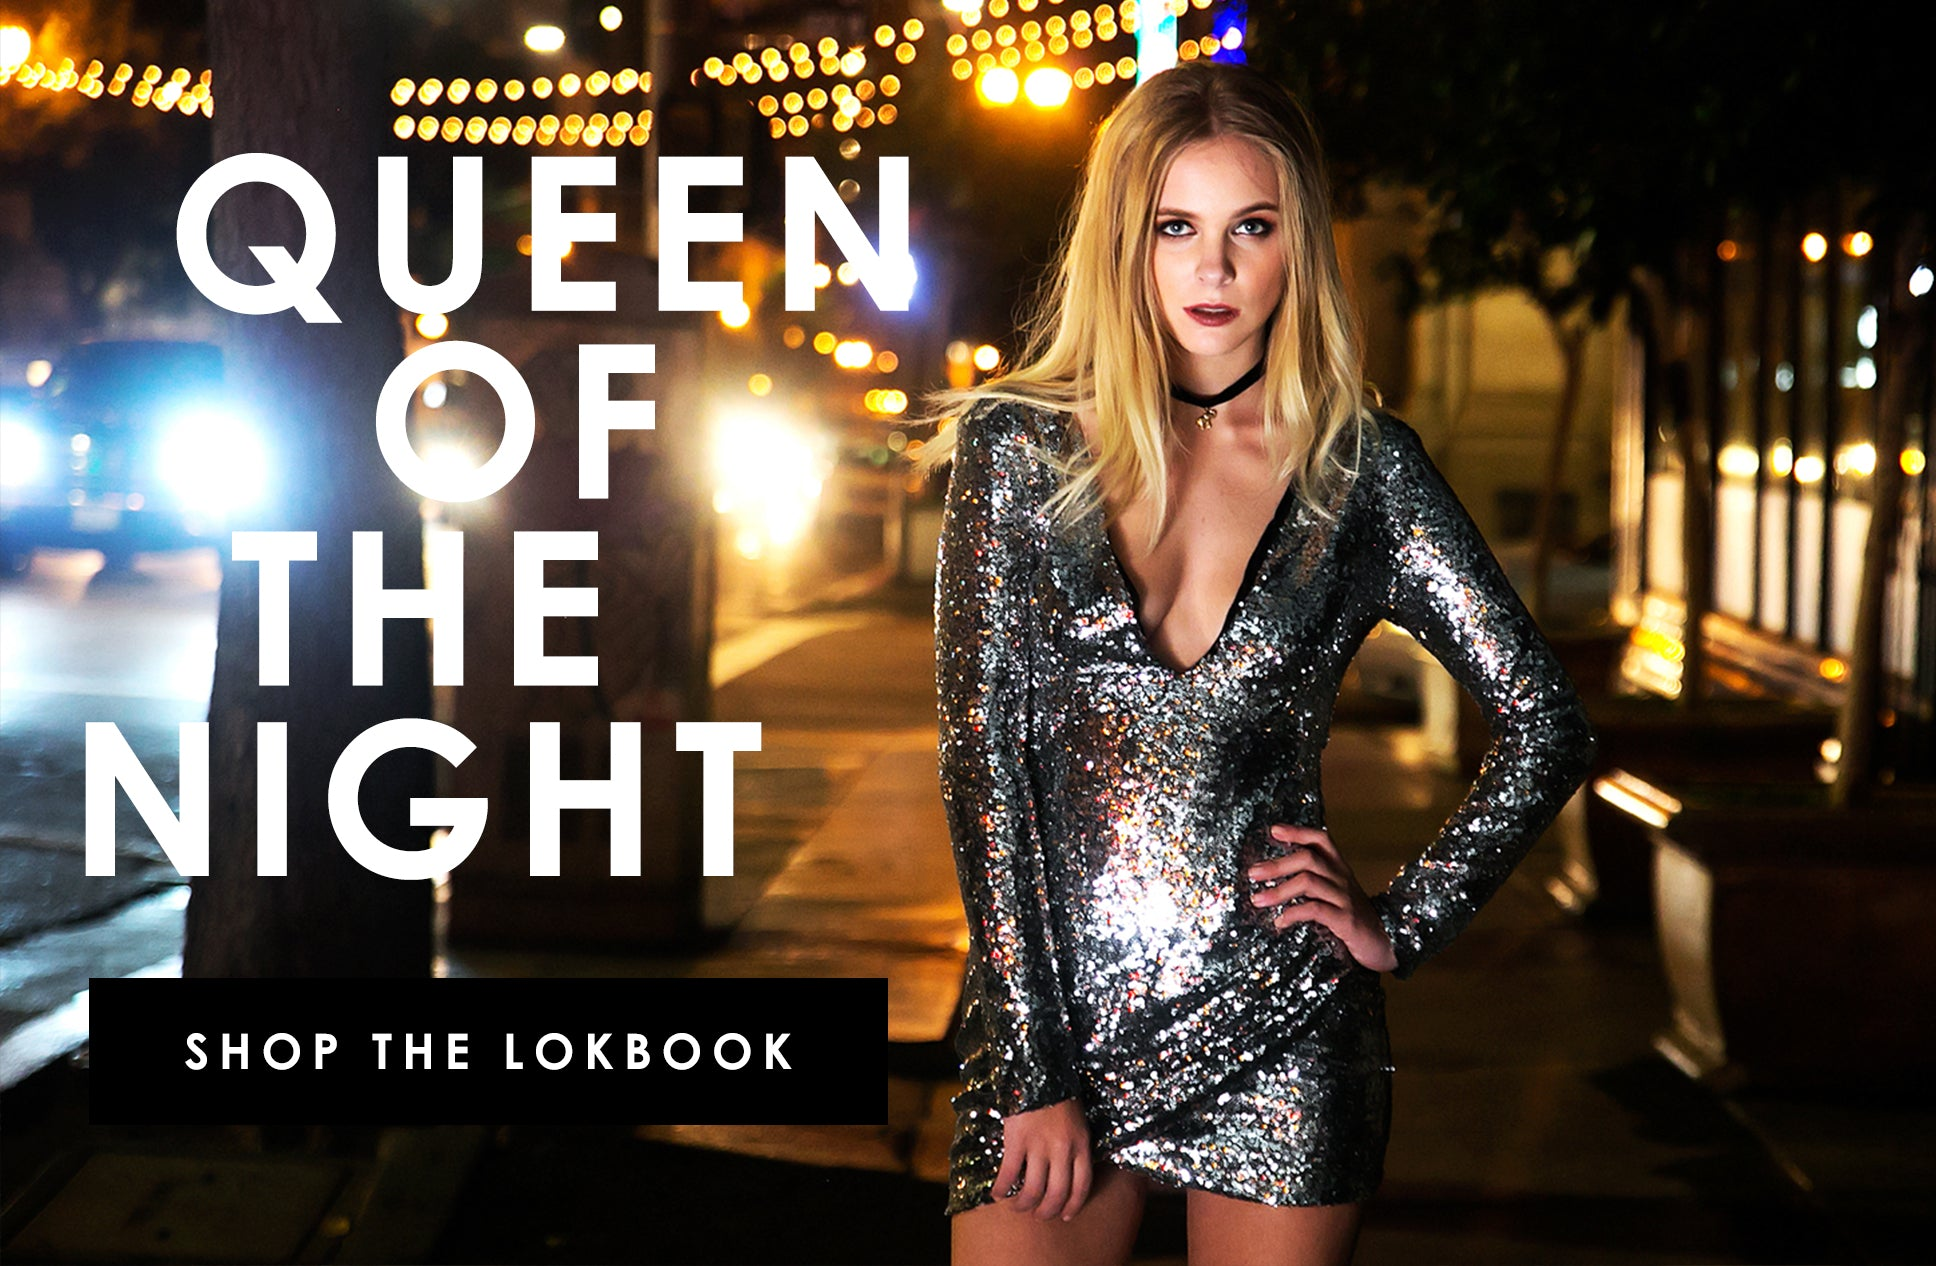 Queen of the Night Lookbook